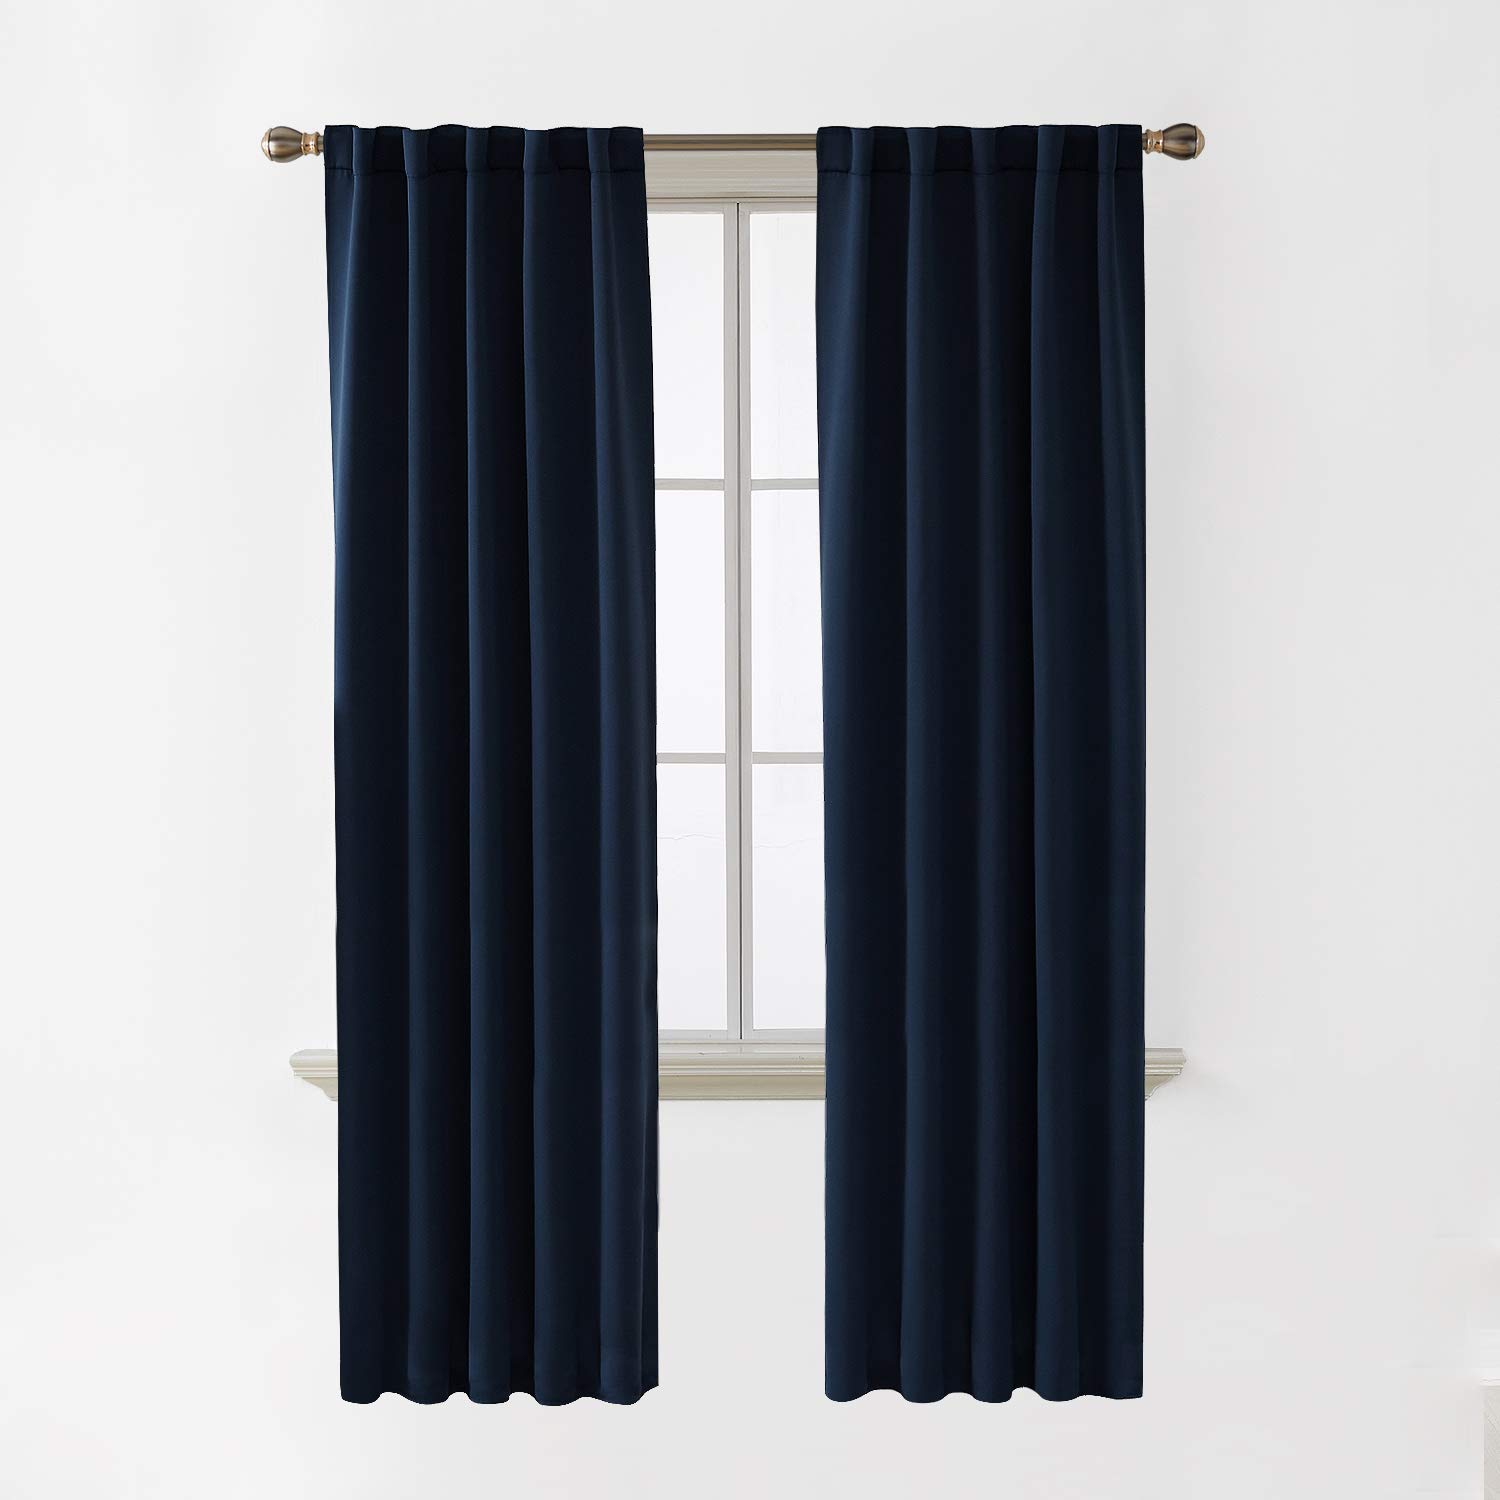 Deconovo Back Tab and Rod Pocket Blackout Curtains for Living Room Light Blocking Curtains 42x84 Inch Navy Blue 2 Panels